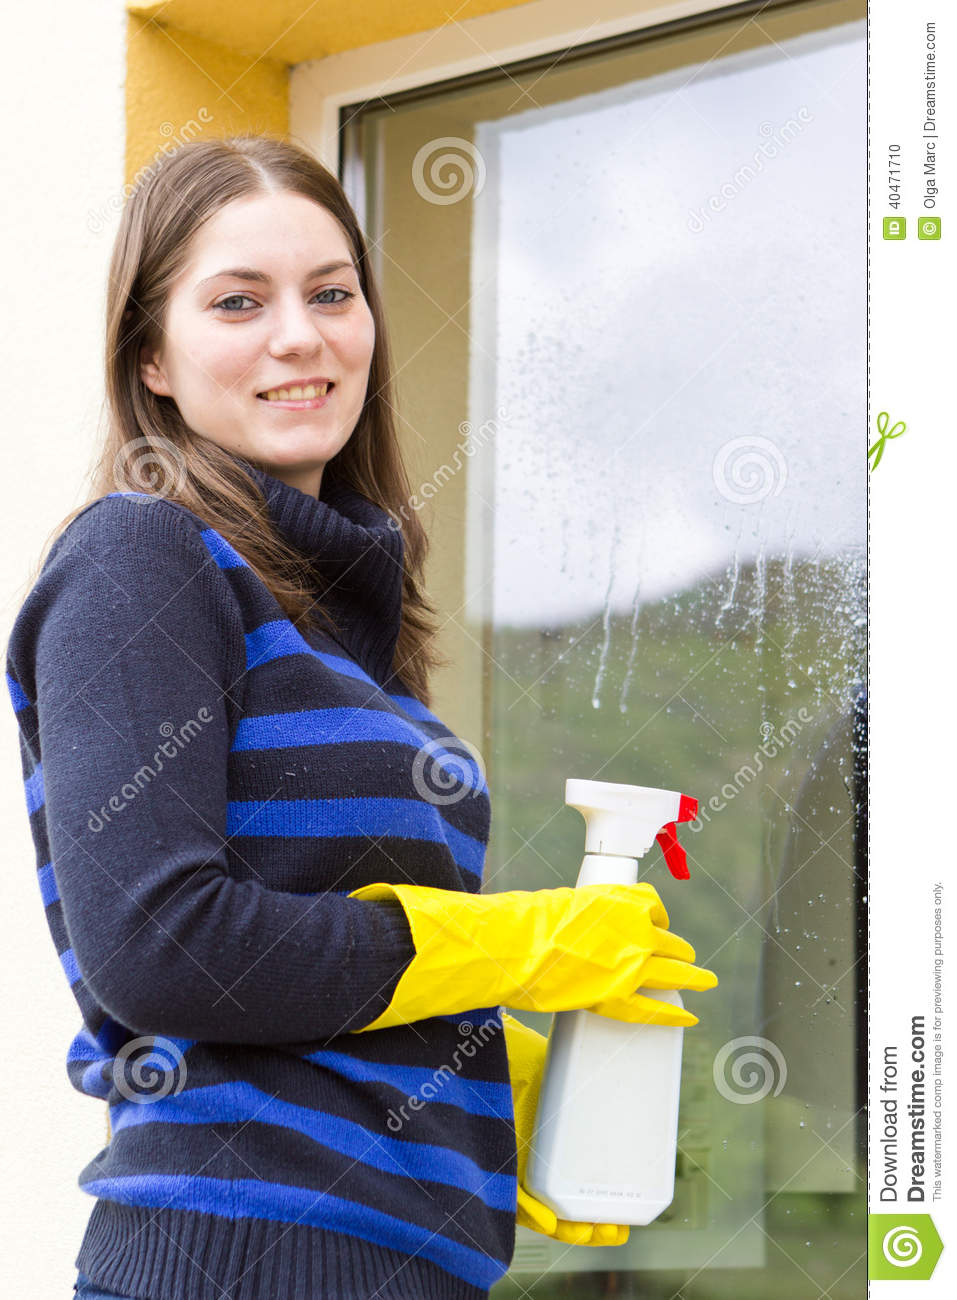 pretty-maid-washing-house-windows-young-